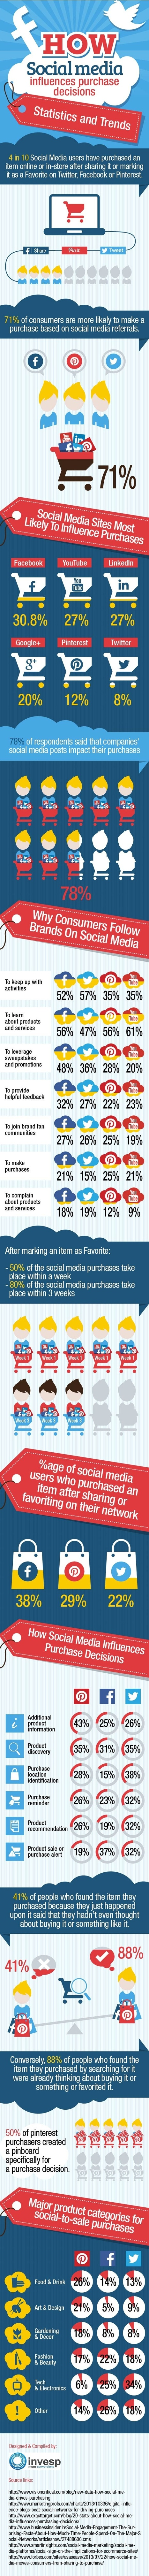 30+ Statistics How Social Media Influence Purchasing Decisions [INFOGRAPHIC] | Surviving Social Chaos | Scoop.it